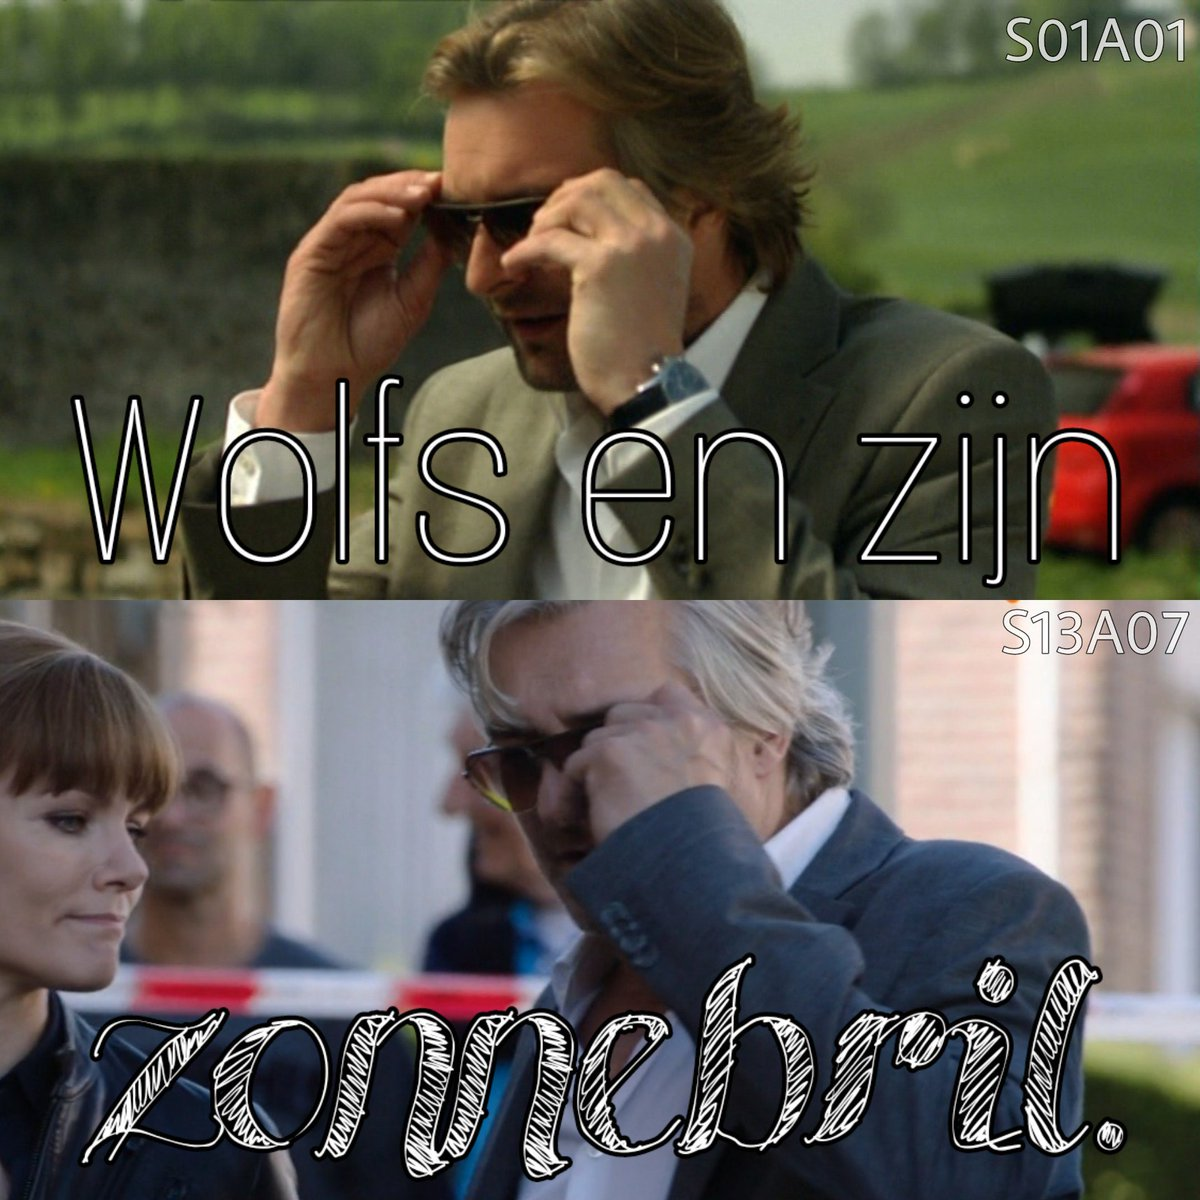 Annelie Huisman's photo on #flikkenmaastricht